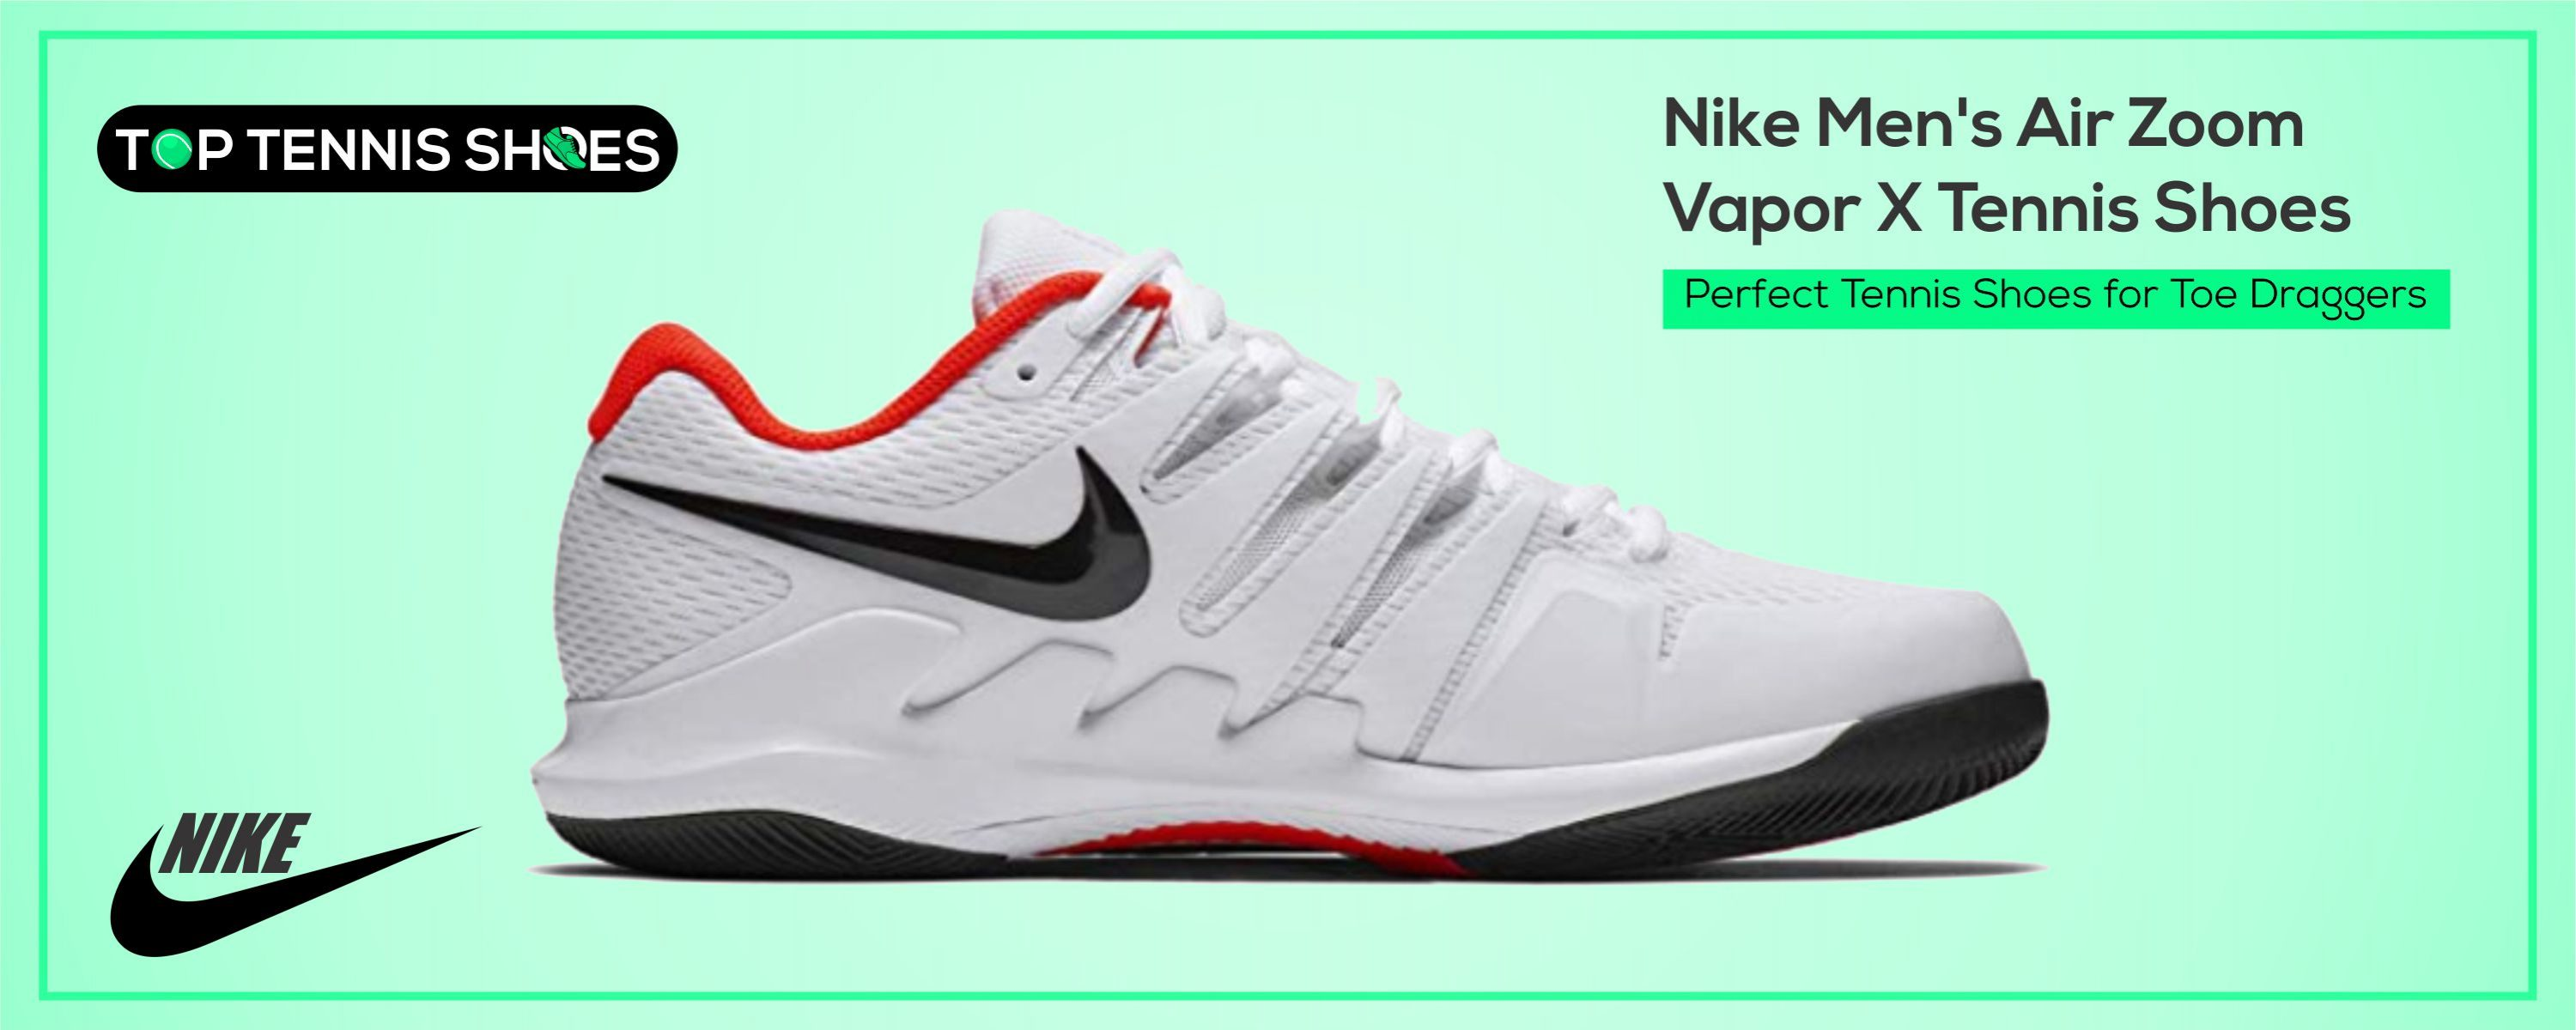 Perfect Tennis Shoes for Toe Draggers